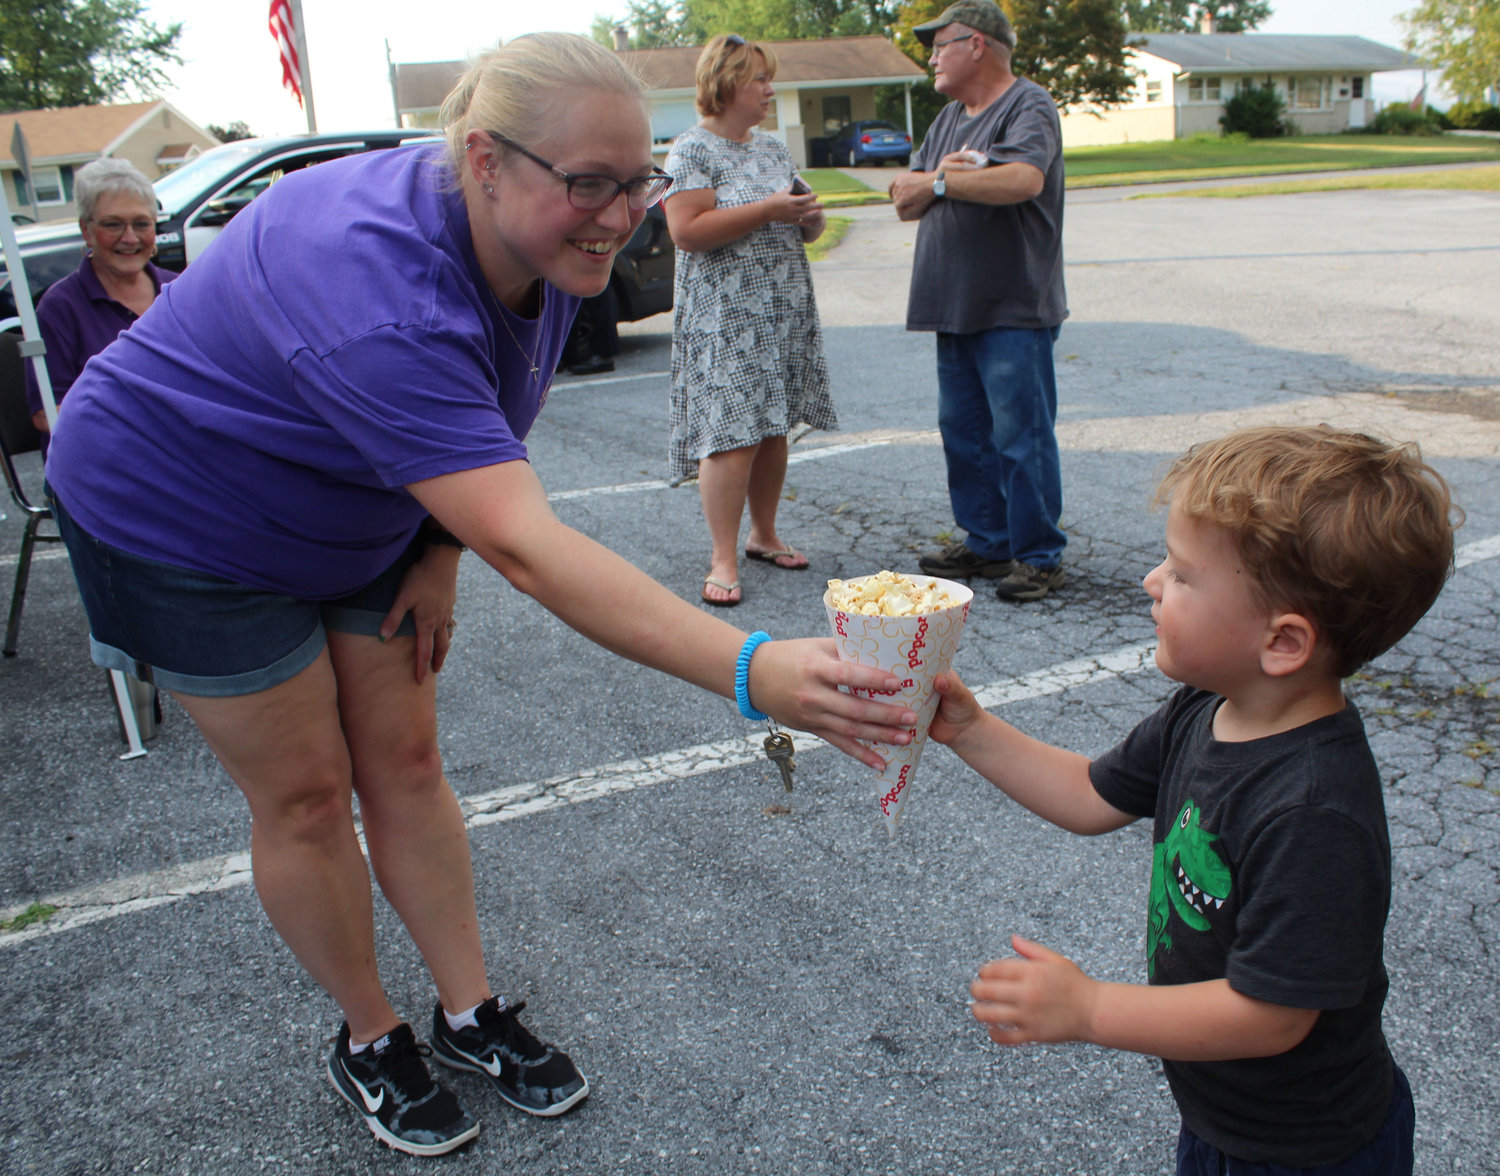 Lower Swatara Lion Kelsey Varner hands Jonas Lenguyel popcorn during National Night Out in Lower Swatara on Aug. 6.